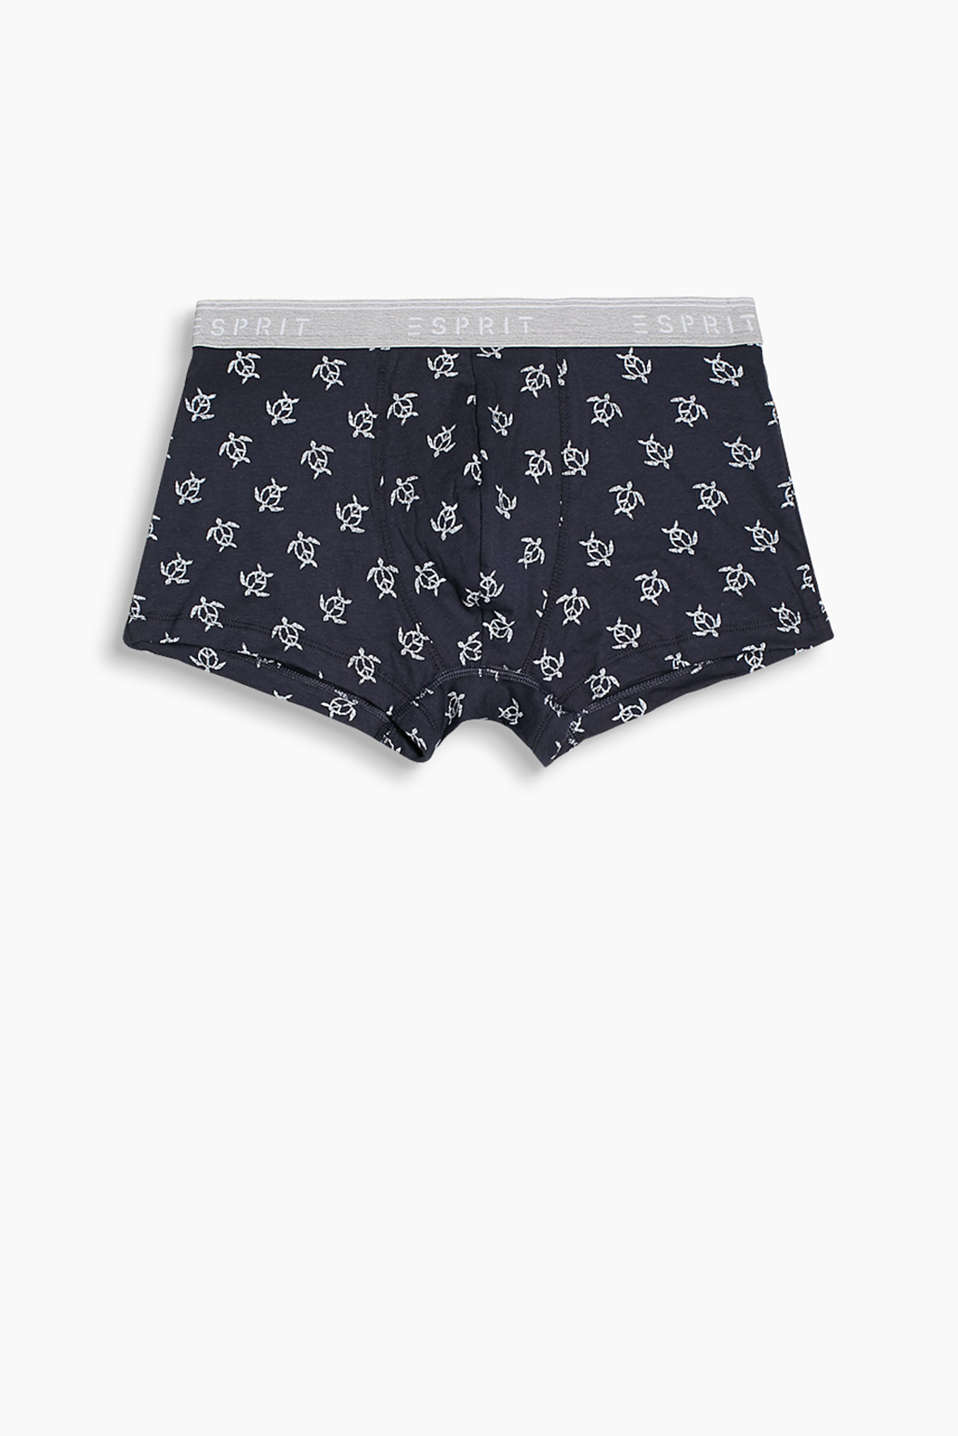 Stretch cotton hipster shorts with a tortoise print and logo waistband